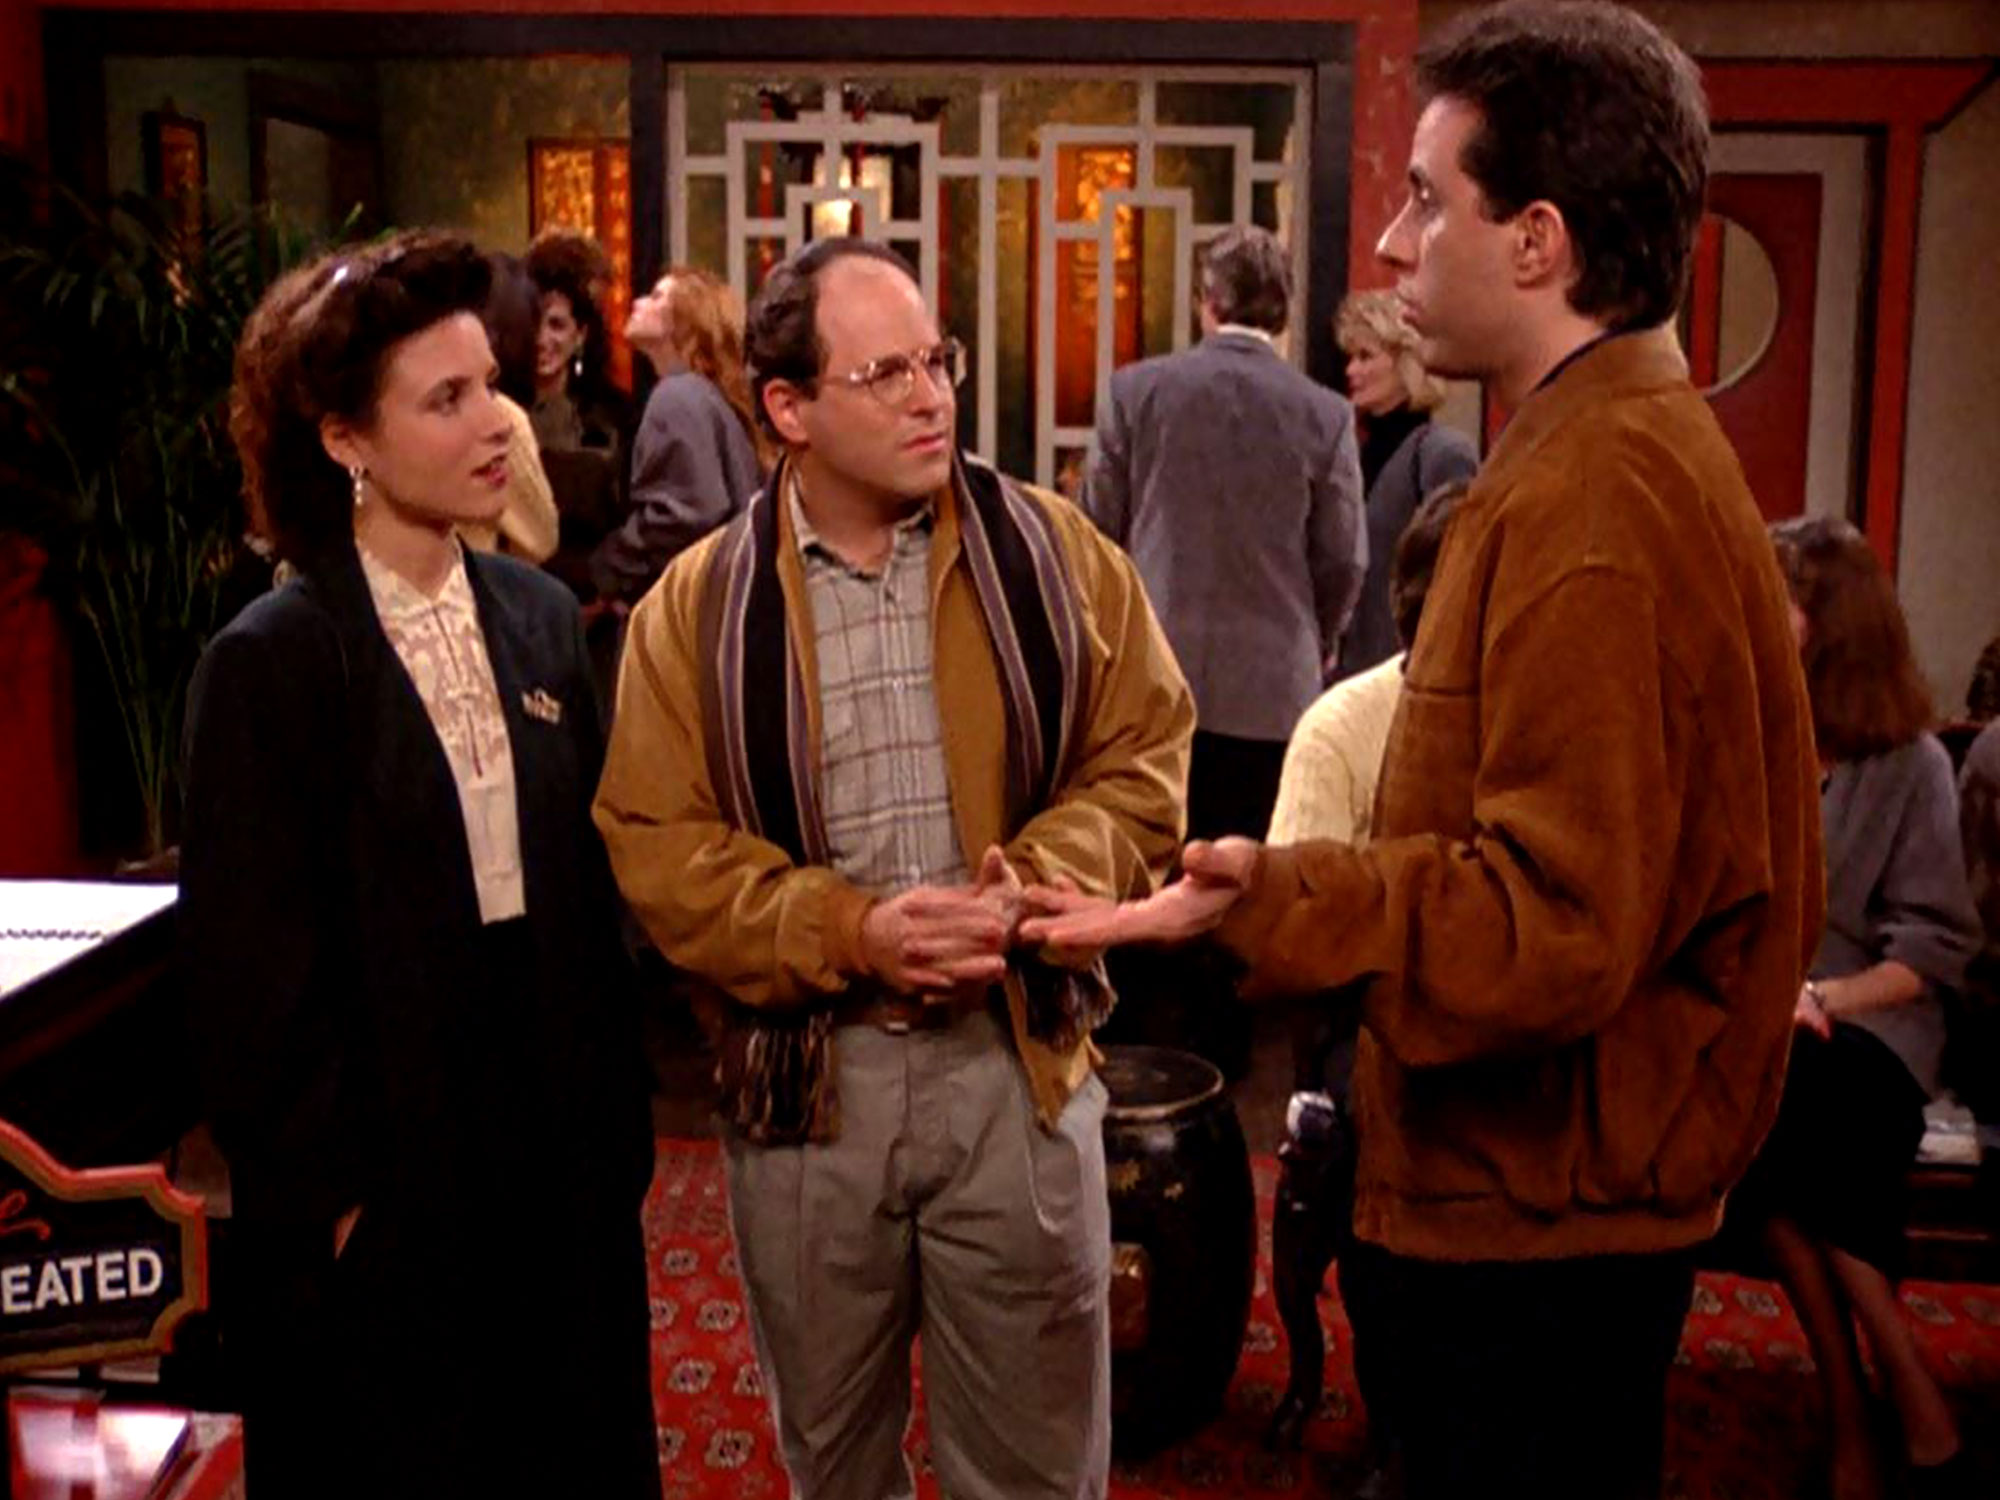 Seinfeld 'The Chinese Restaurant' episode